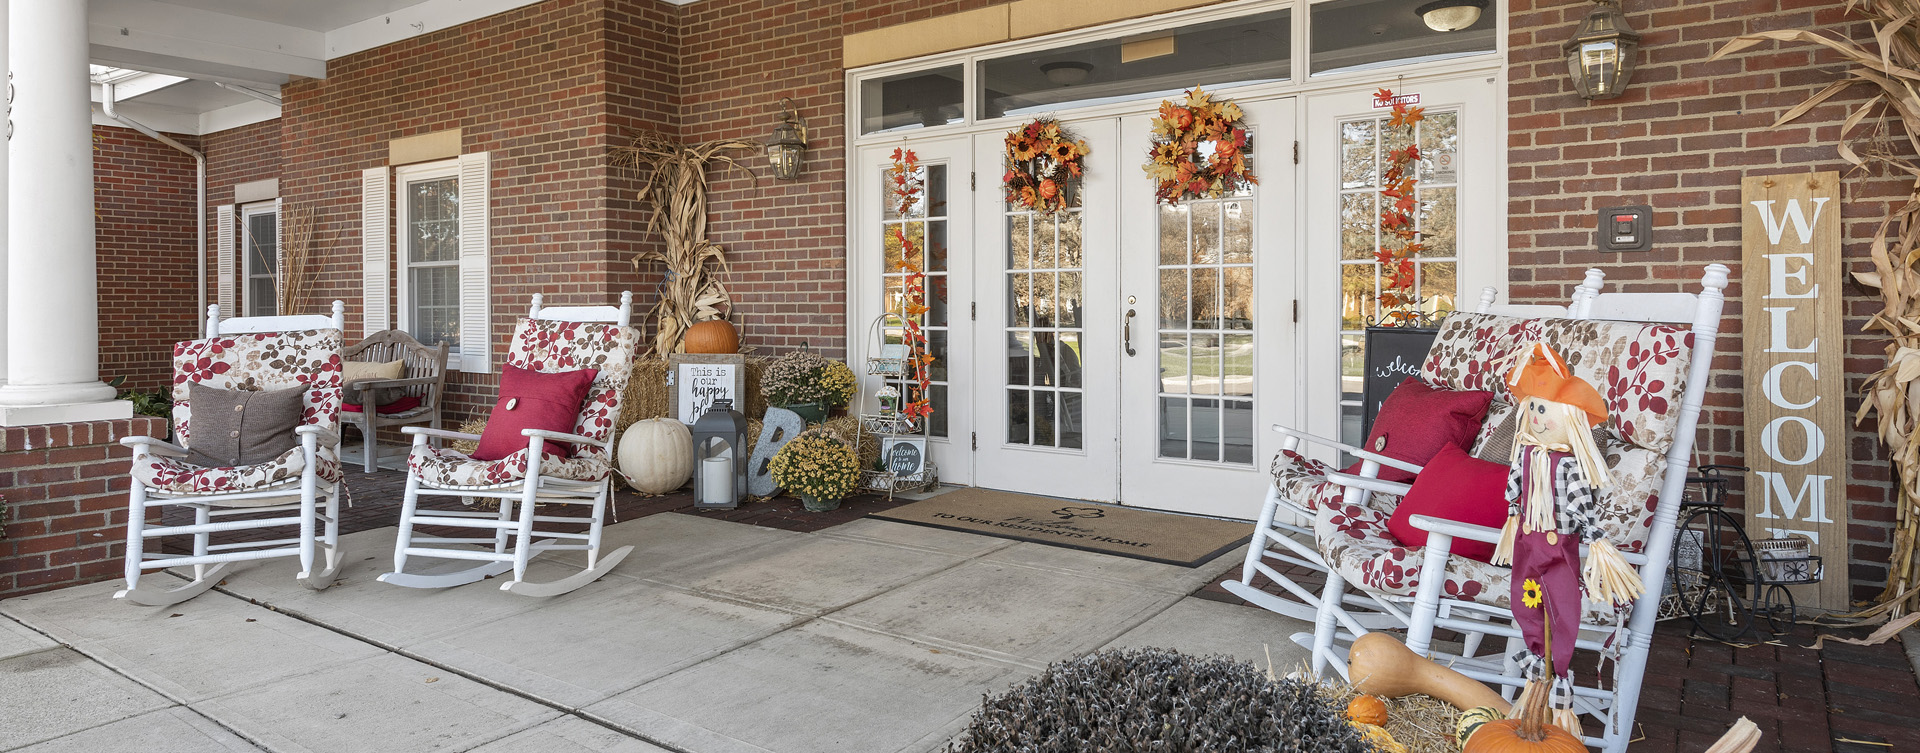 Enjoy conversations with friends on the porch at Bickford of Worthington